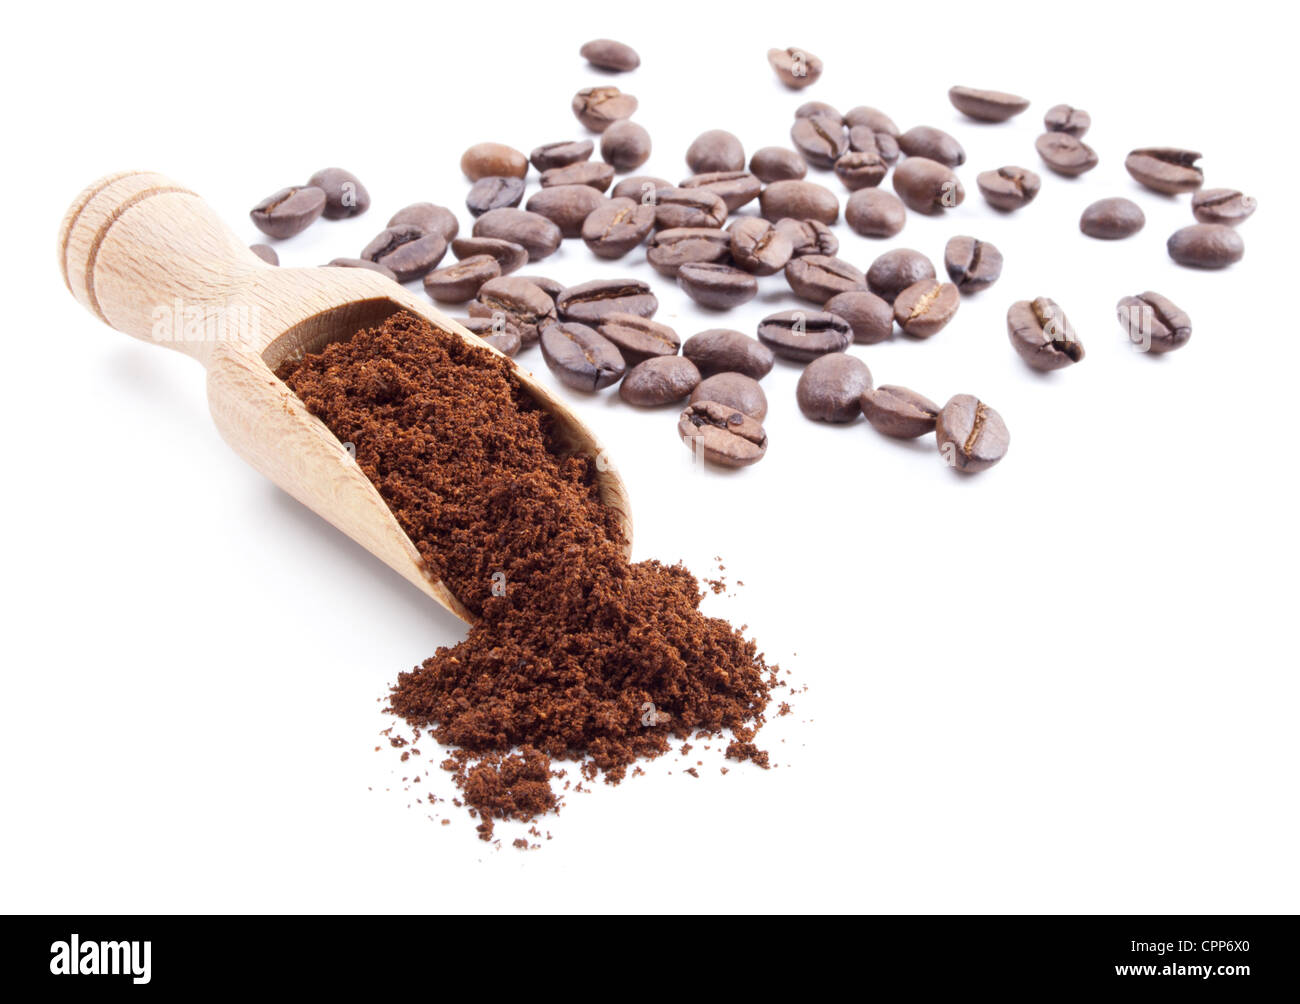 ground coffee and coffee beans isolated on white background Stock Photo